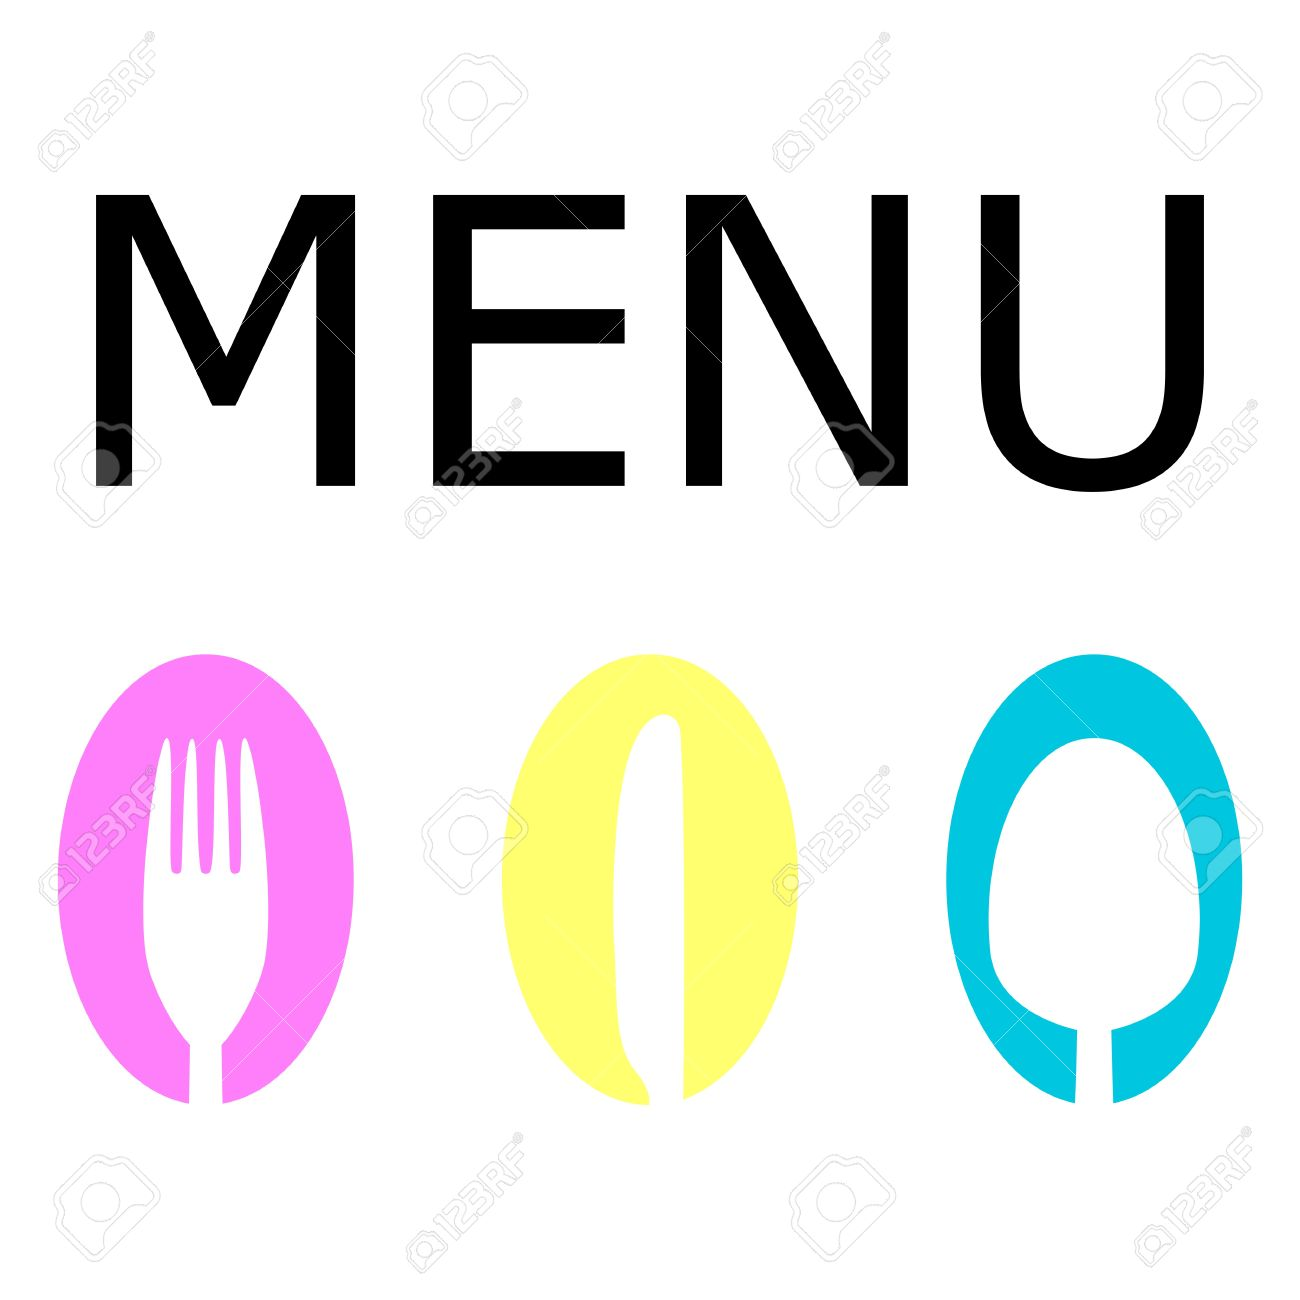 logo for the restaurant menu royalty free cliparts, vectors, and